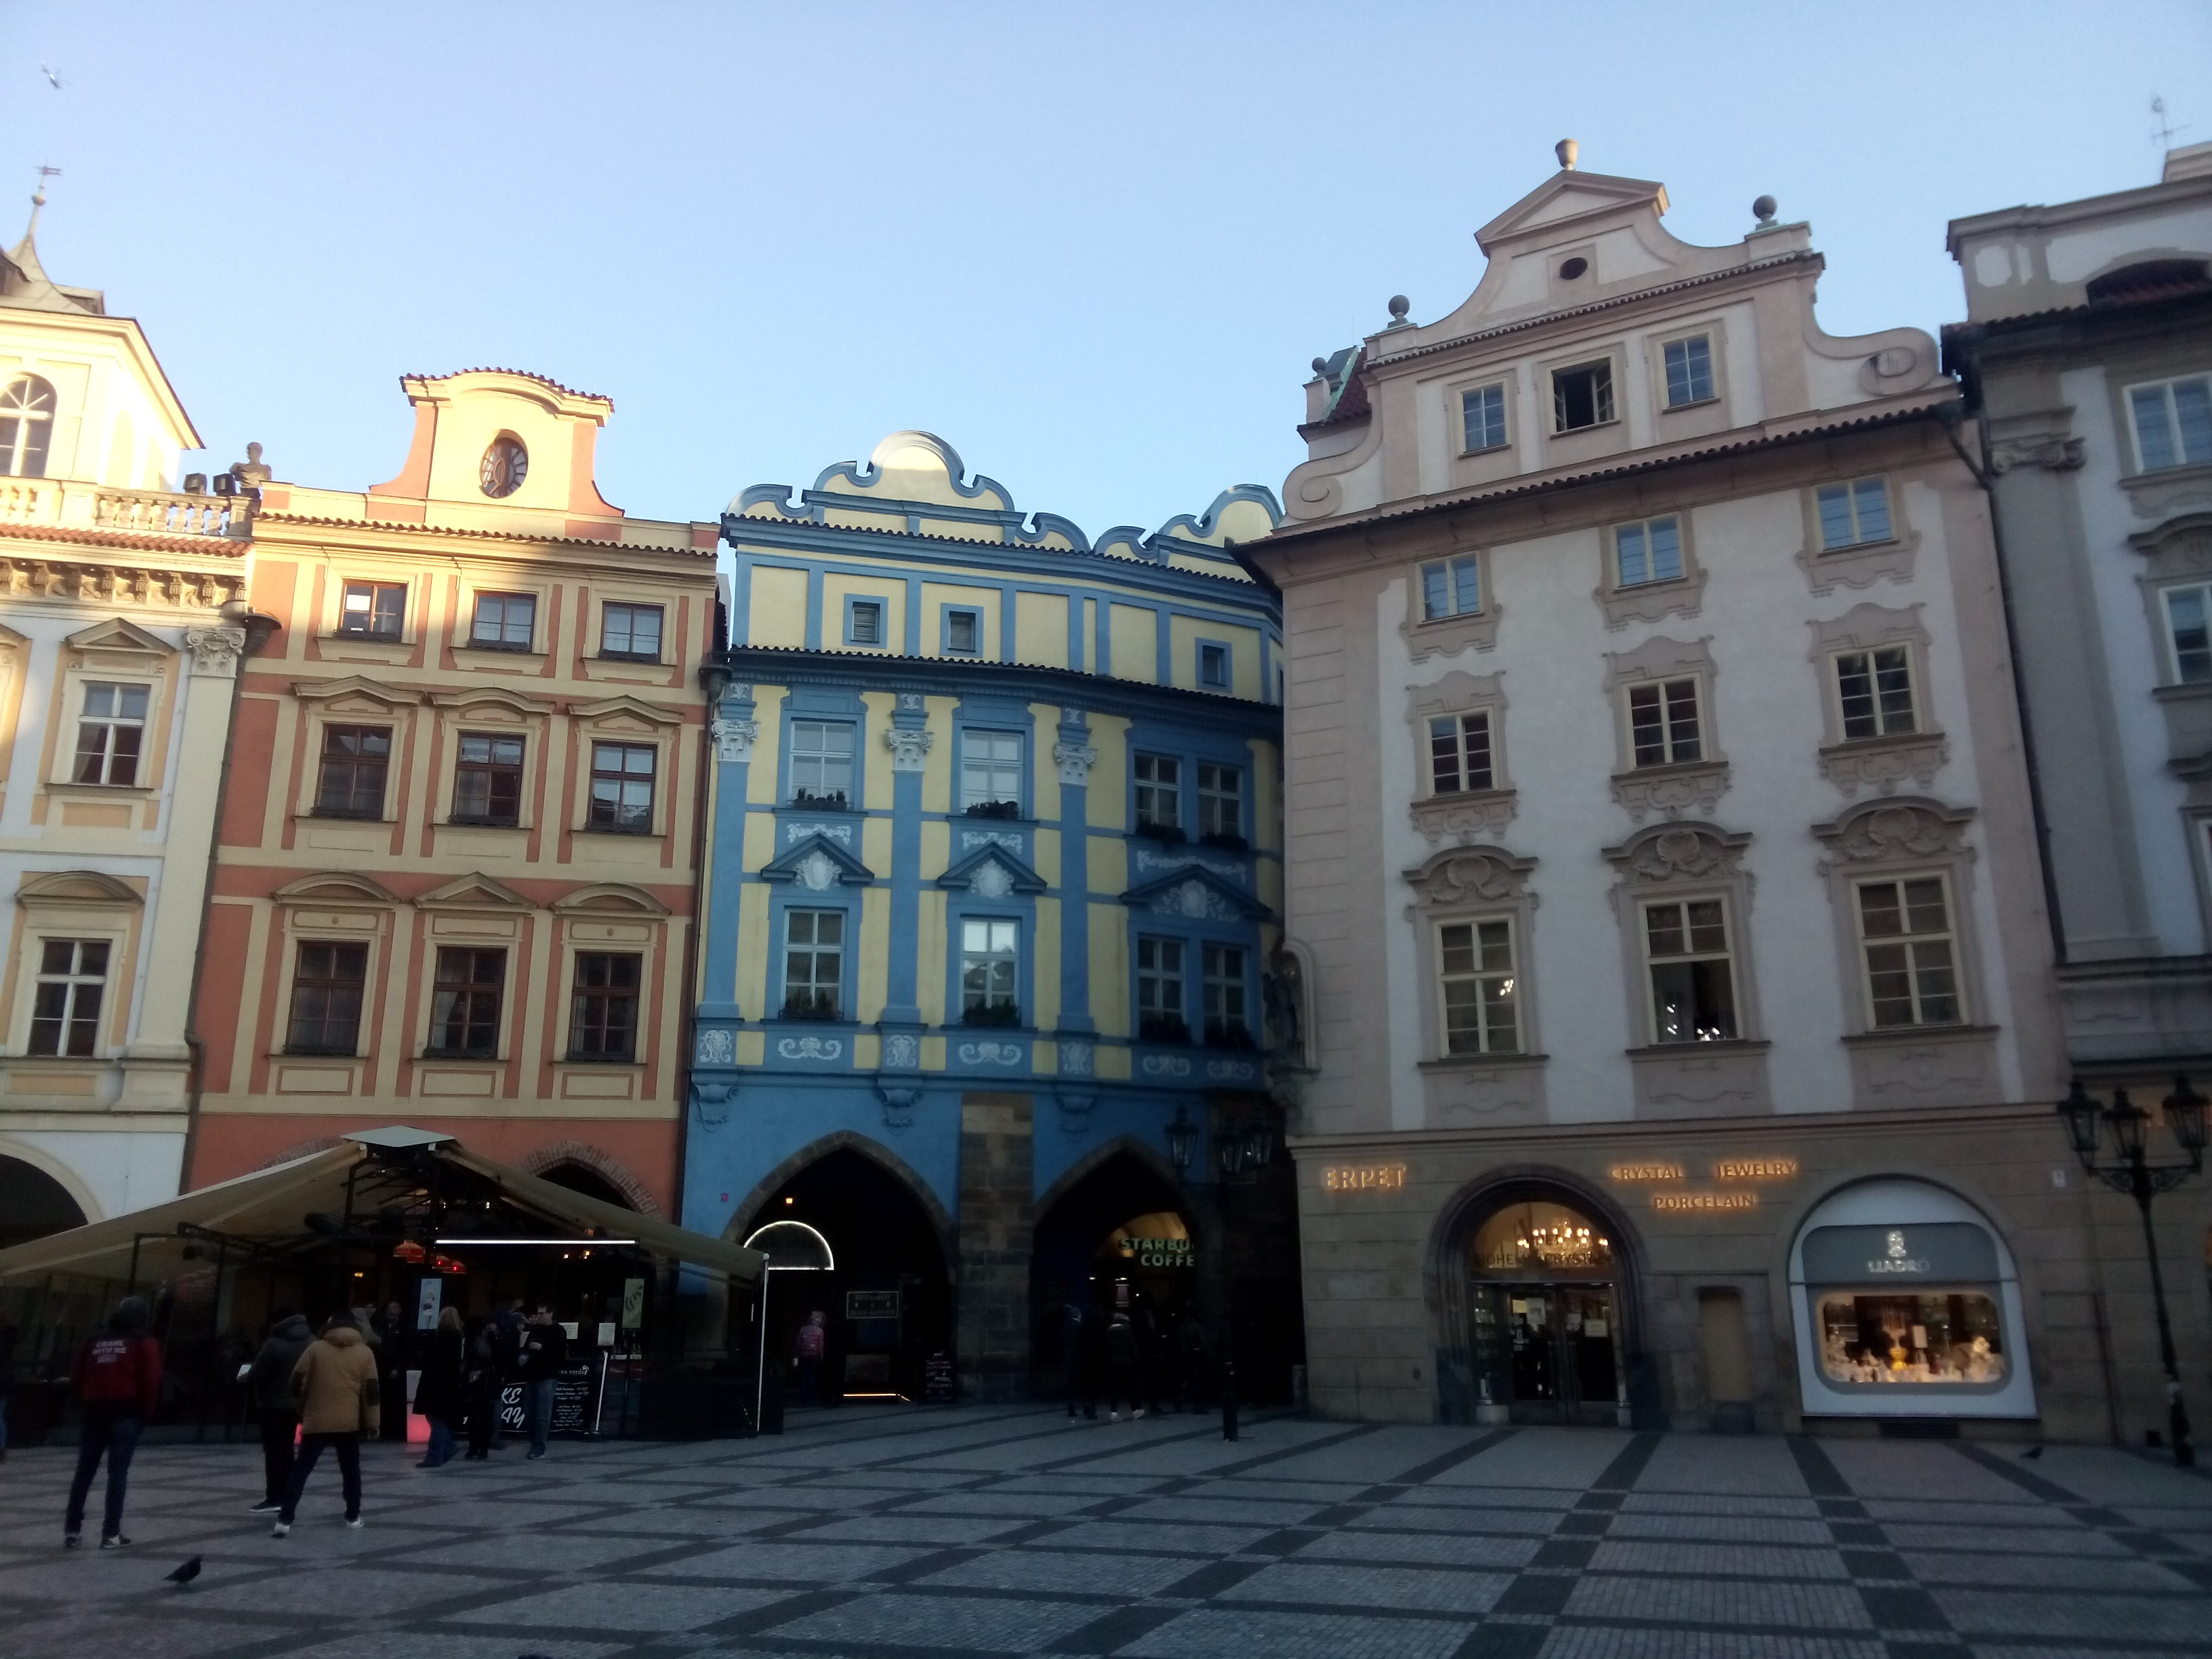 A row of fancy shaped buildings: pink, blue, beige